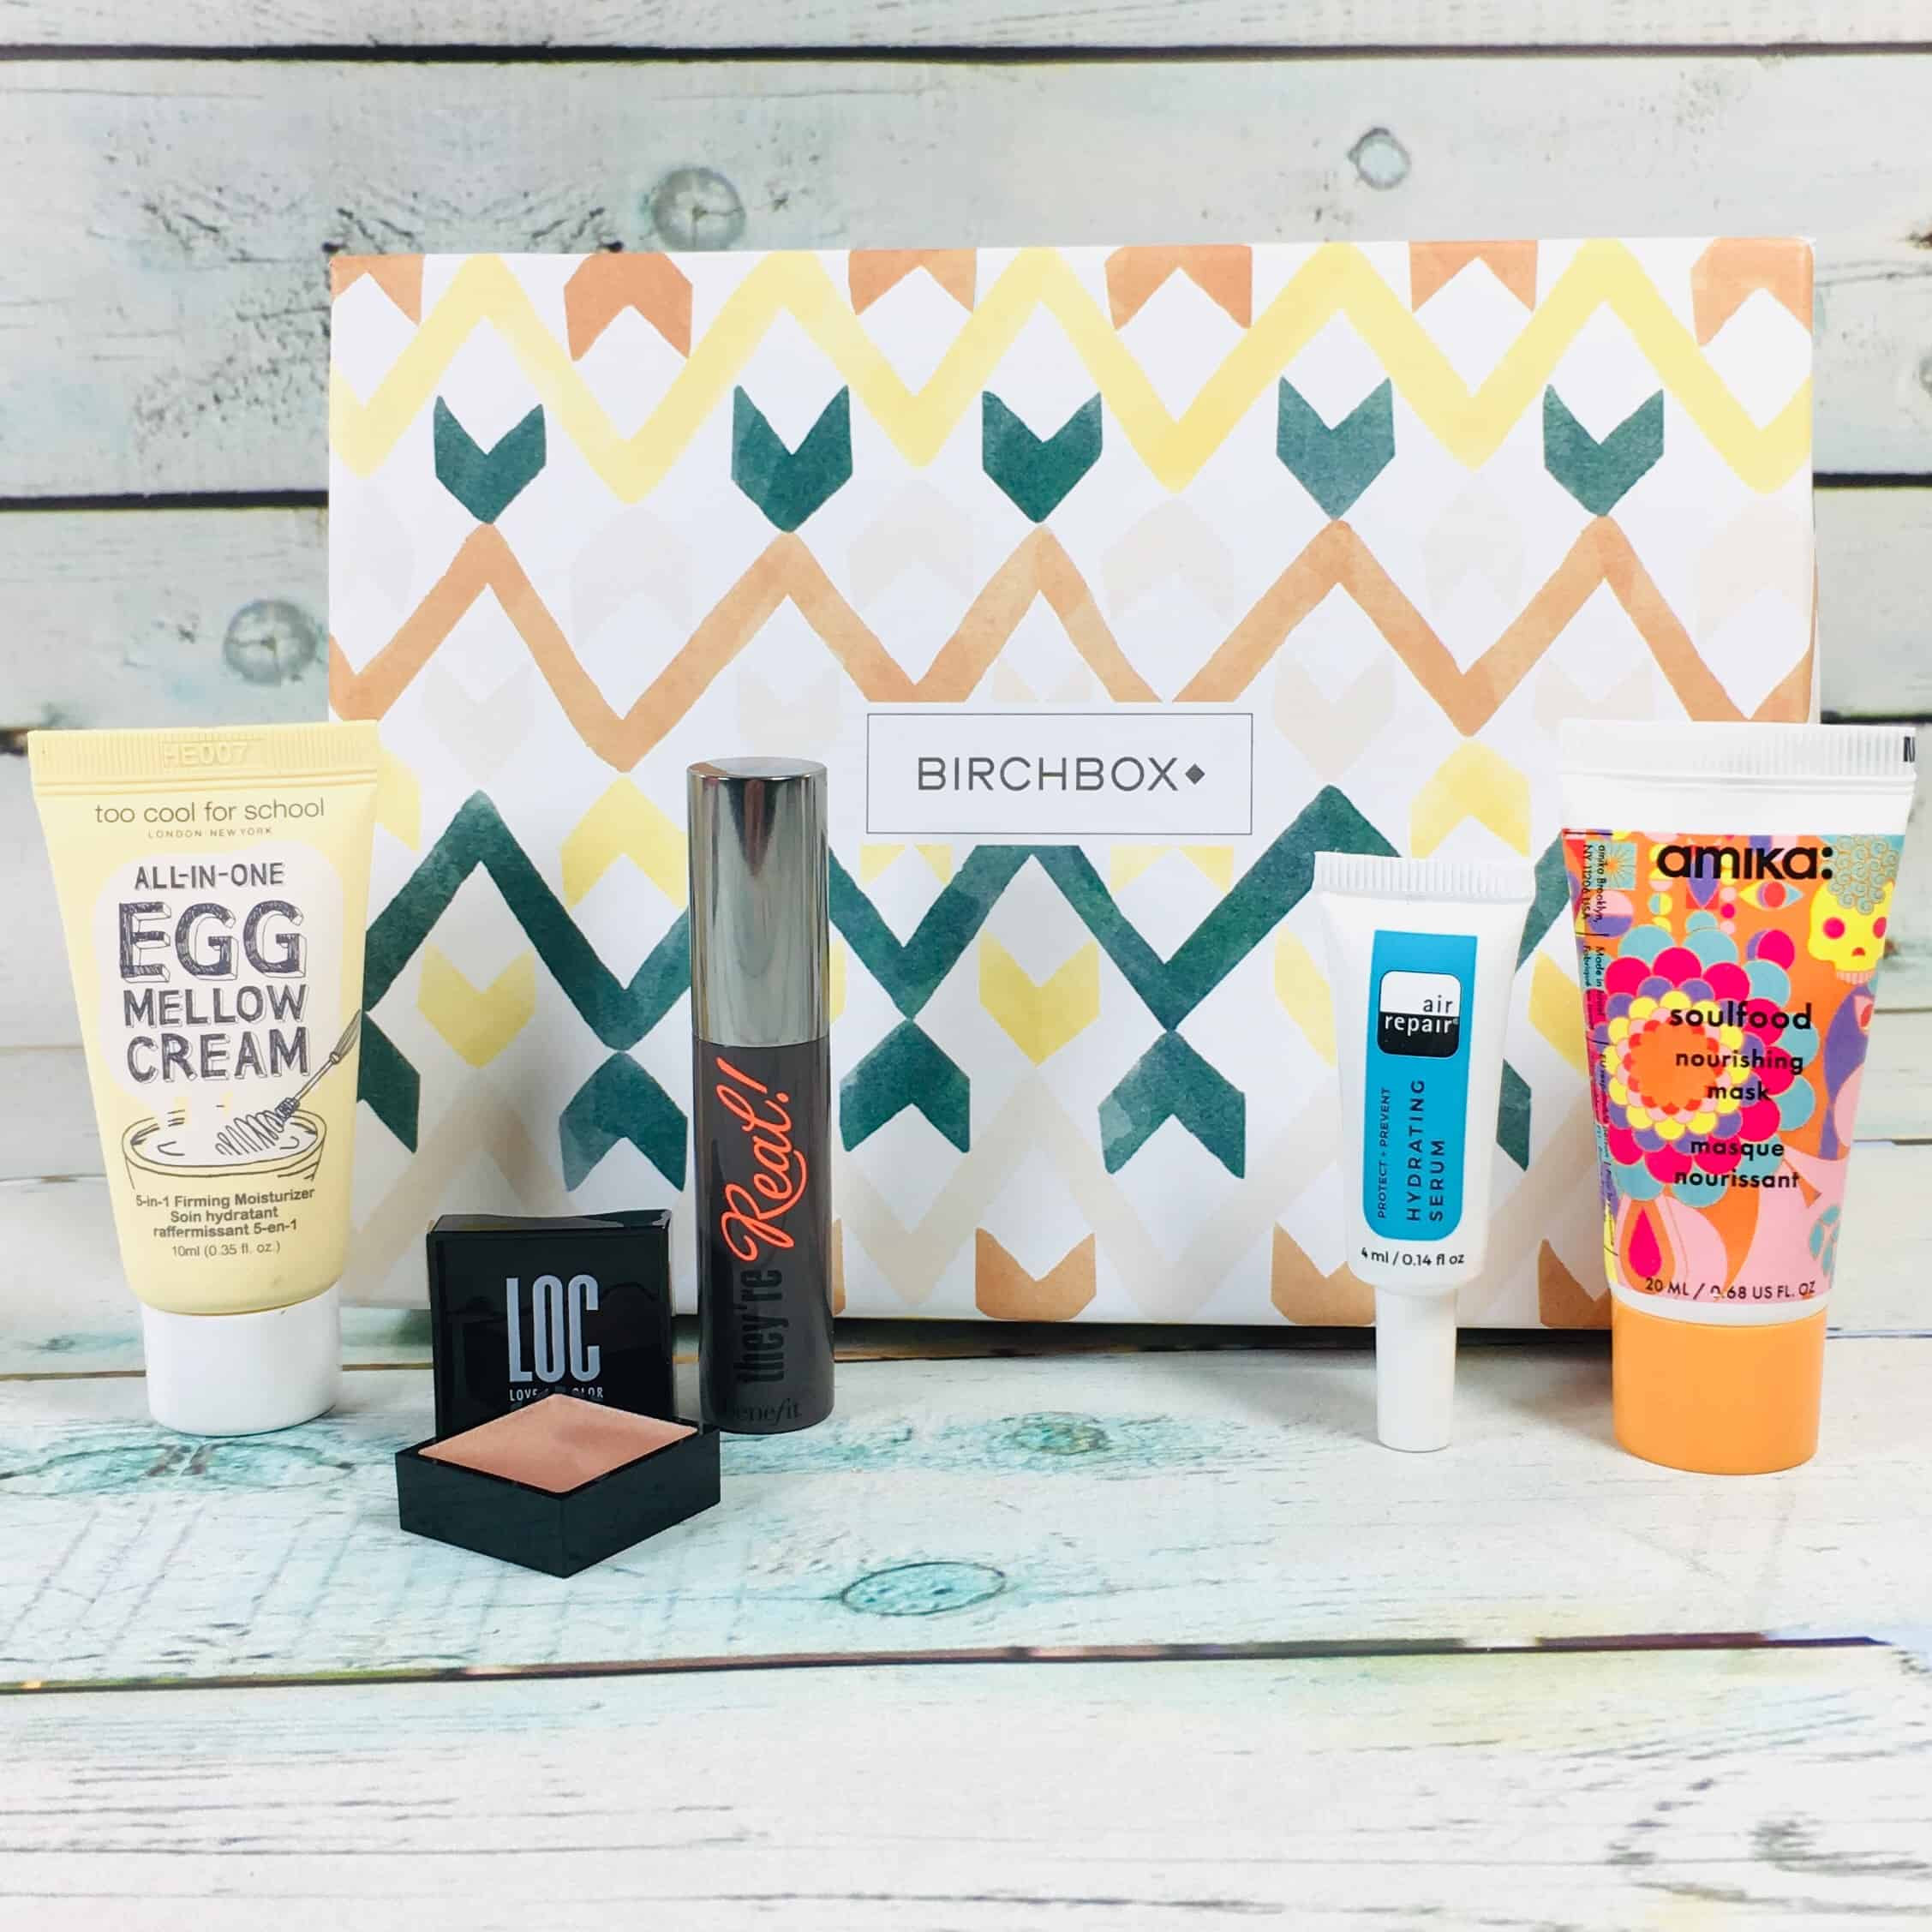 Birchbox November 2018 Curated Box Review + Coupon!